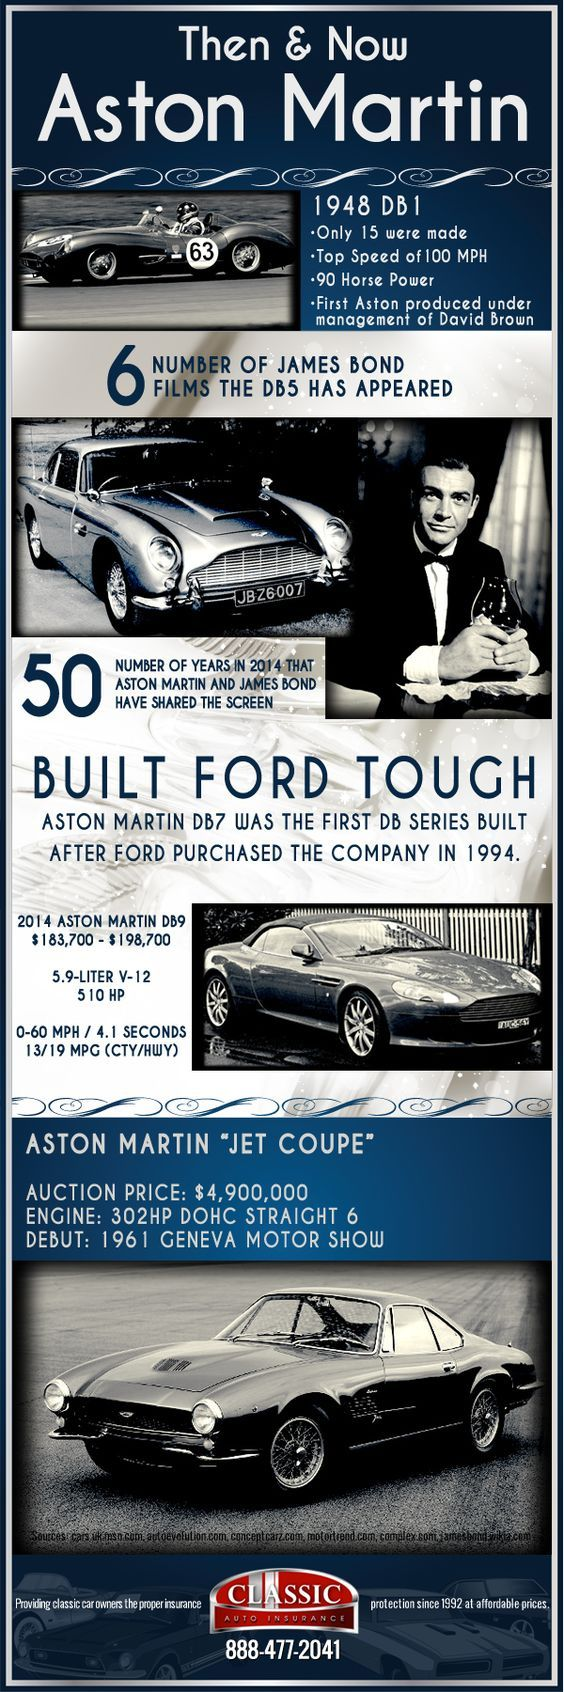 History of Aston Martin luxury collector cars infographic: